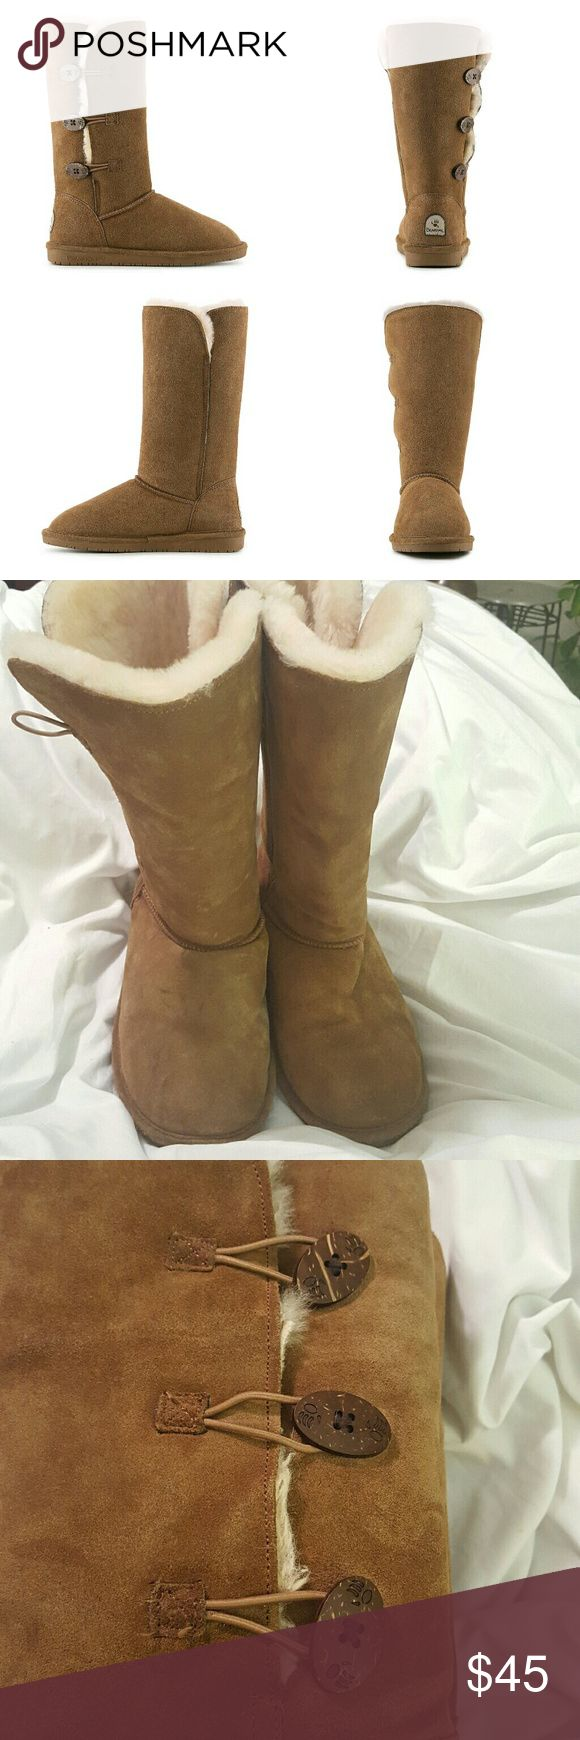 Selling this BearPaw Lauren suede sheepskin wool boots on Poshmark! My username is: andreallmoore. #shopmycloset #poshmark #fashion #shopping #style #forsale #BearPaw #Shoes